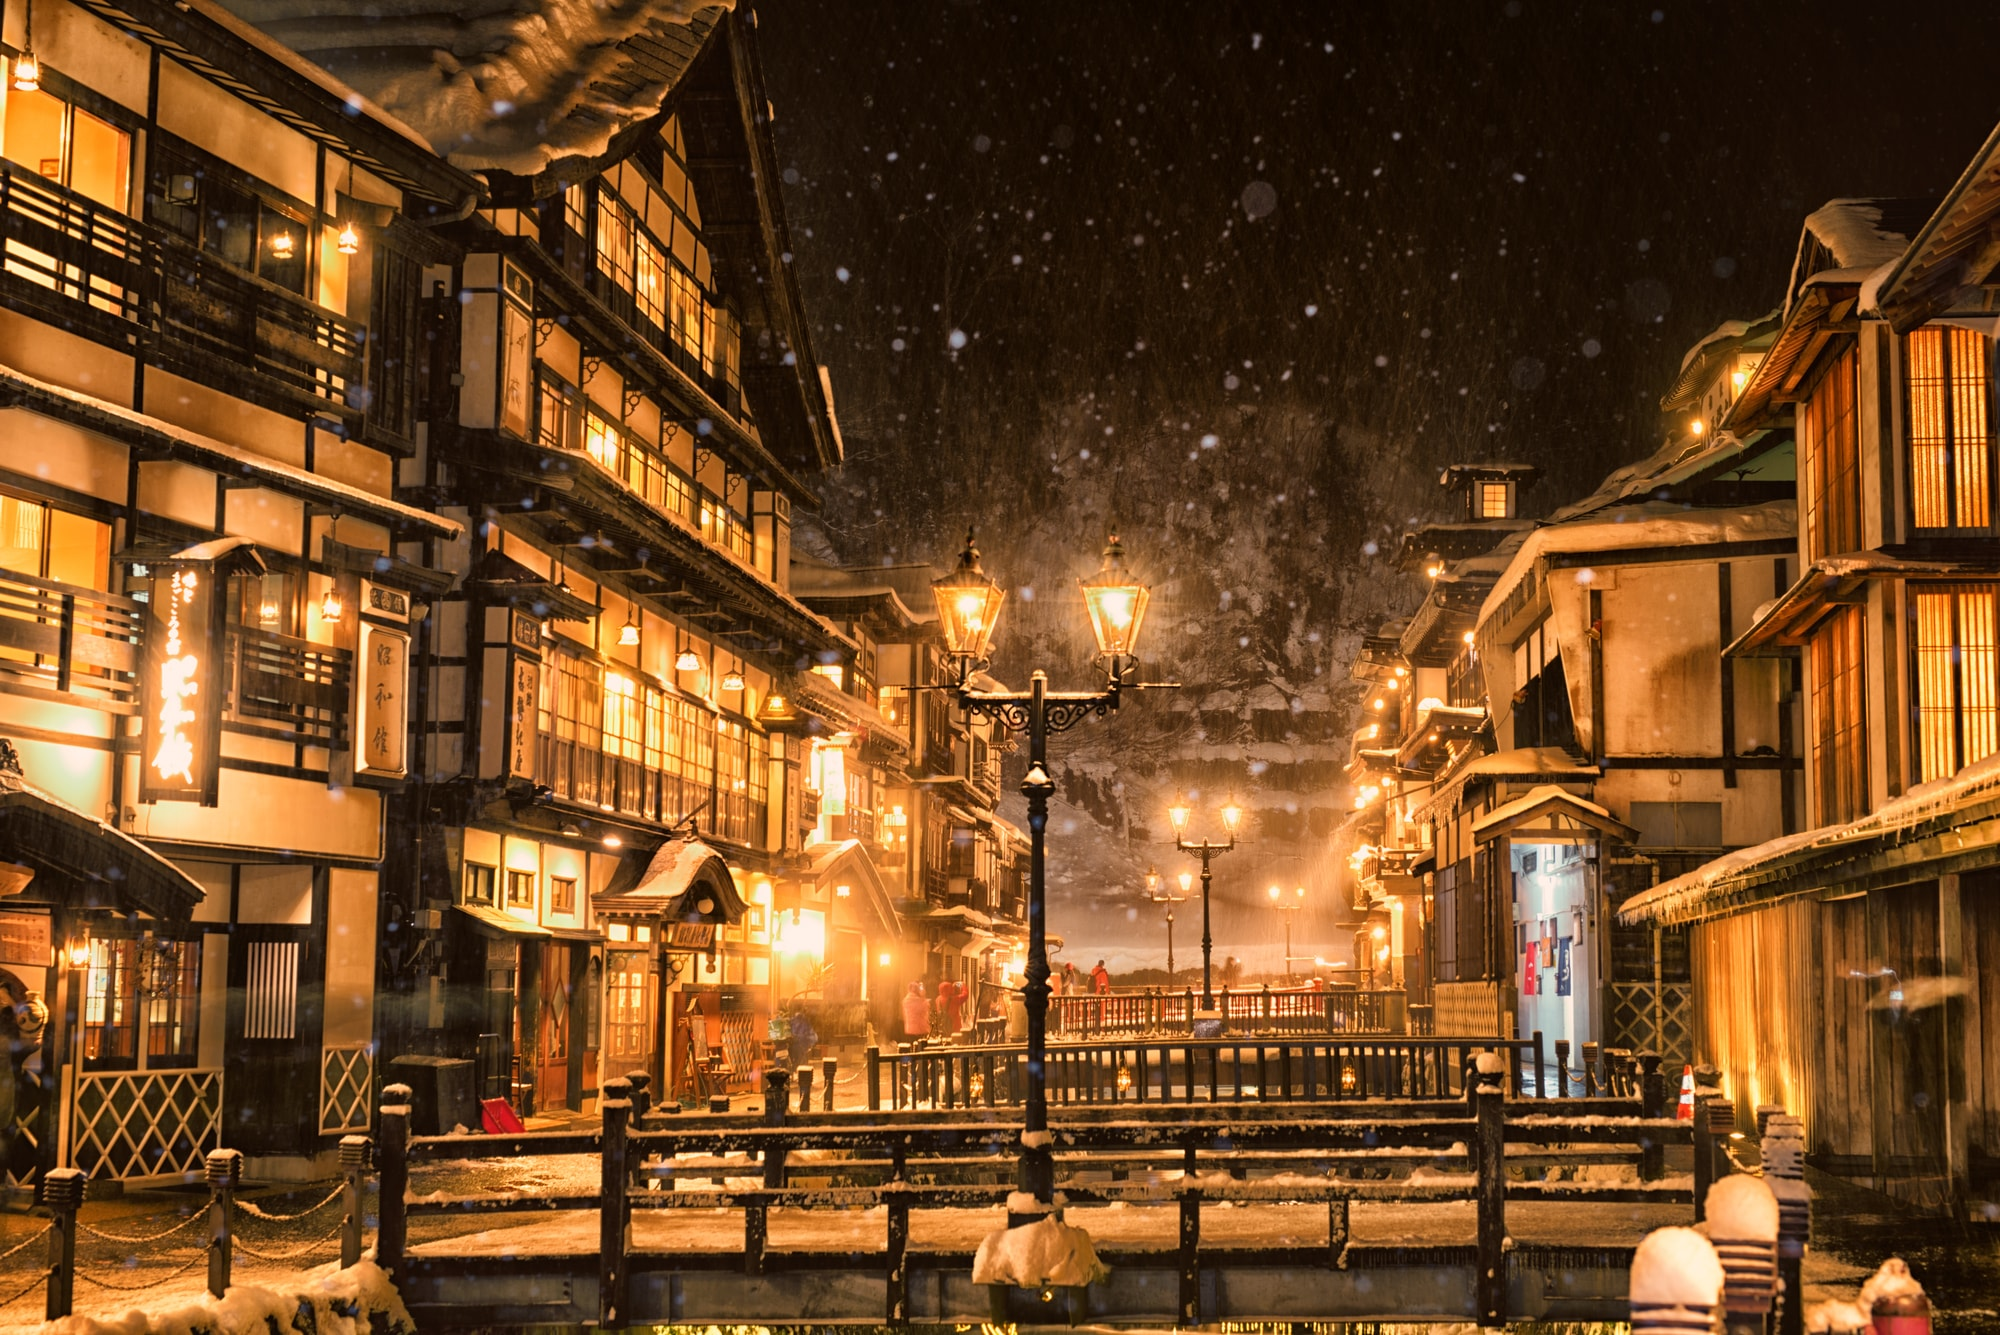 Streets of Ginzan Onsen hot springs town